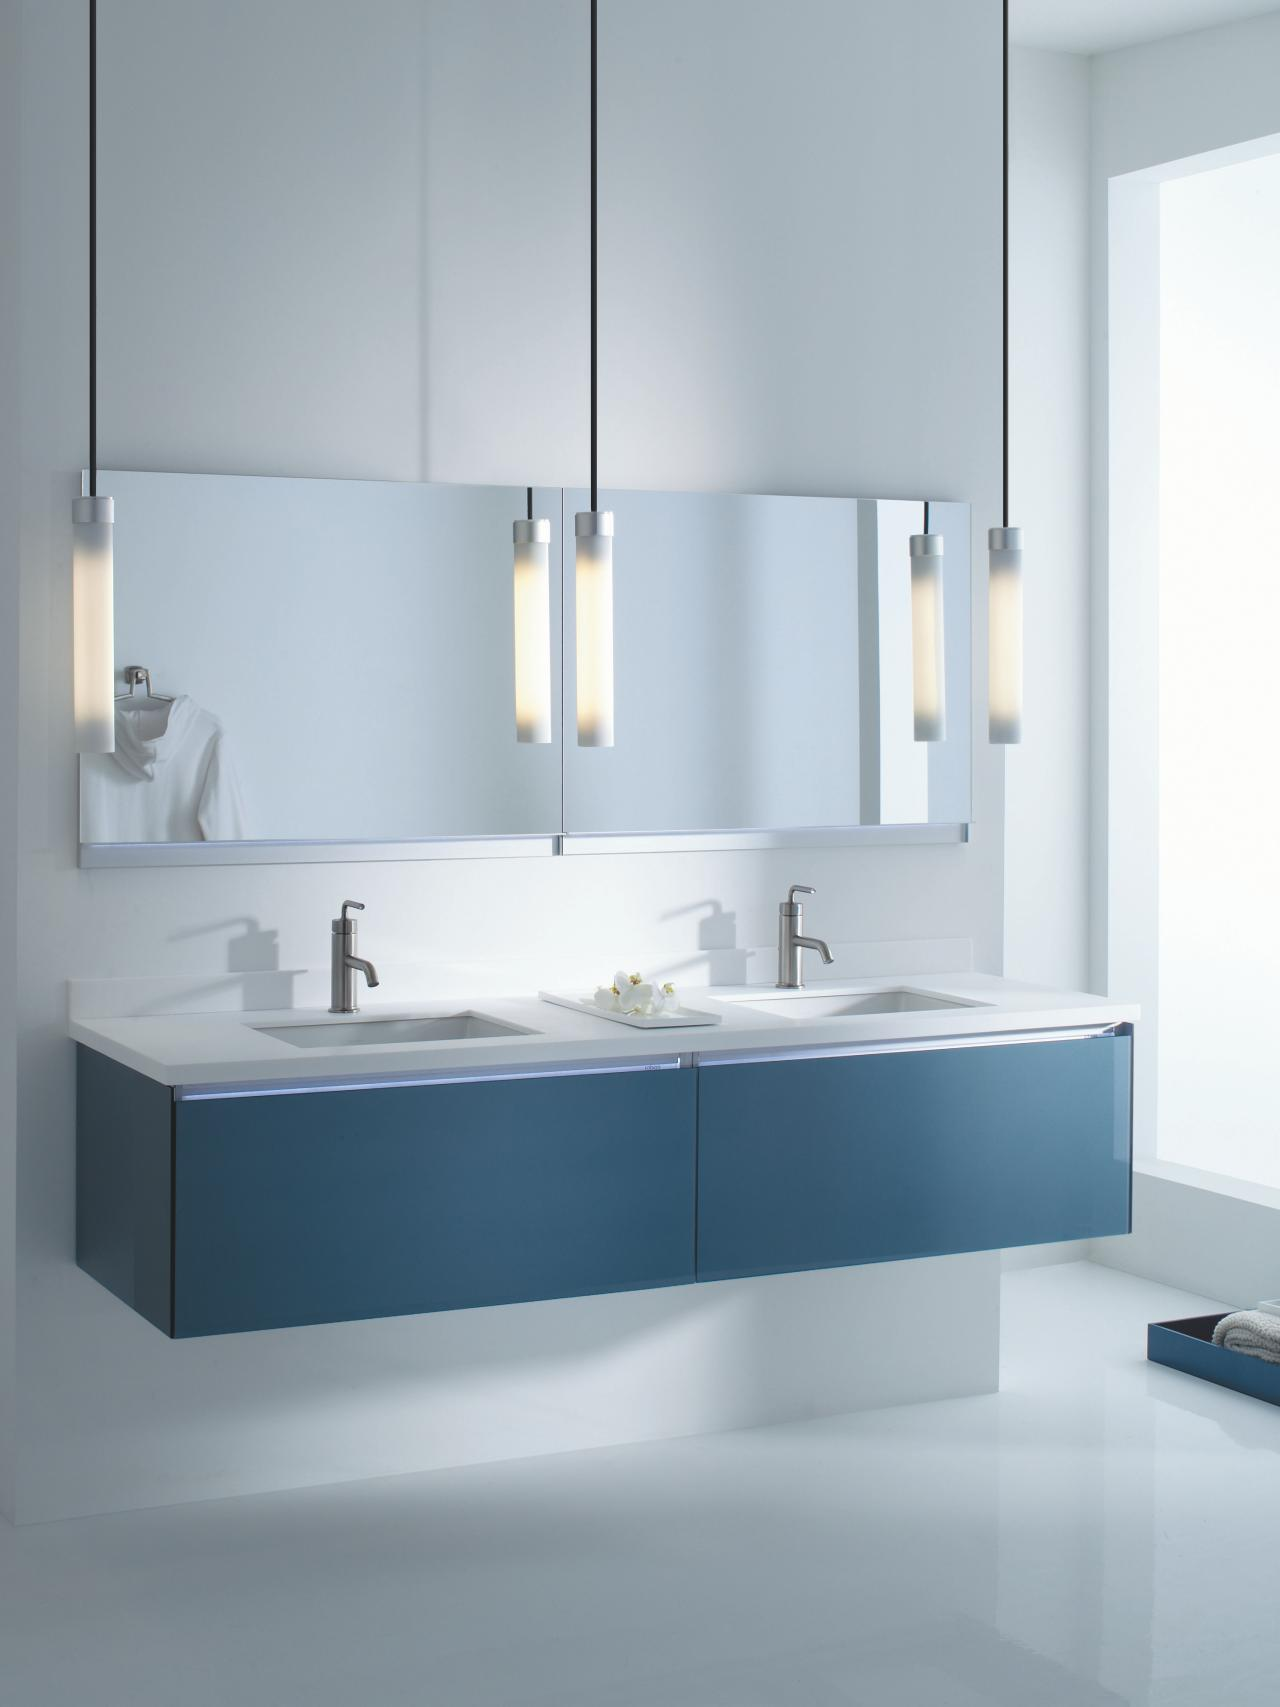 Bathroom Vanities HGTV - Blue bathroom vanity cabinet for bathroom decor ideas